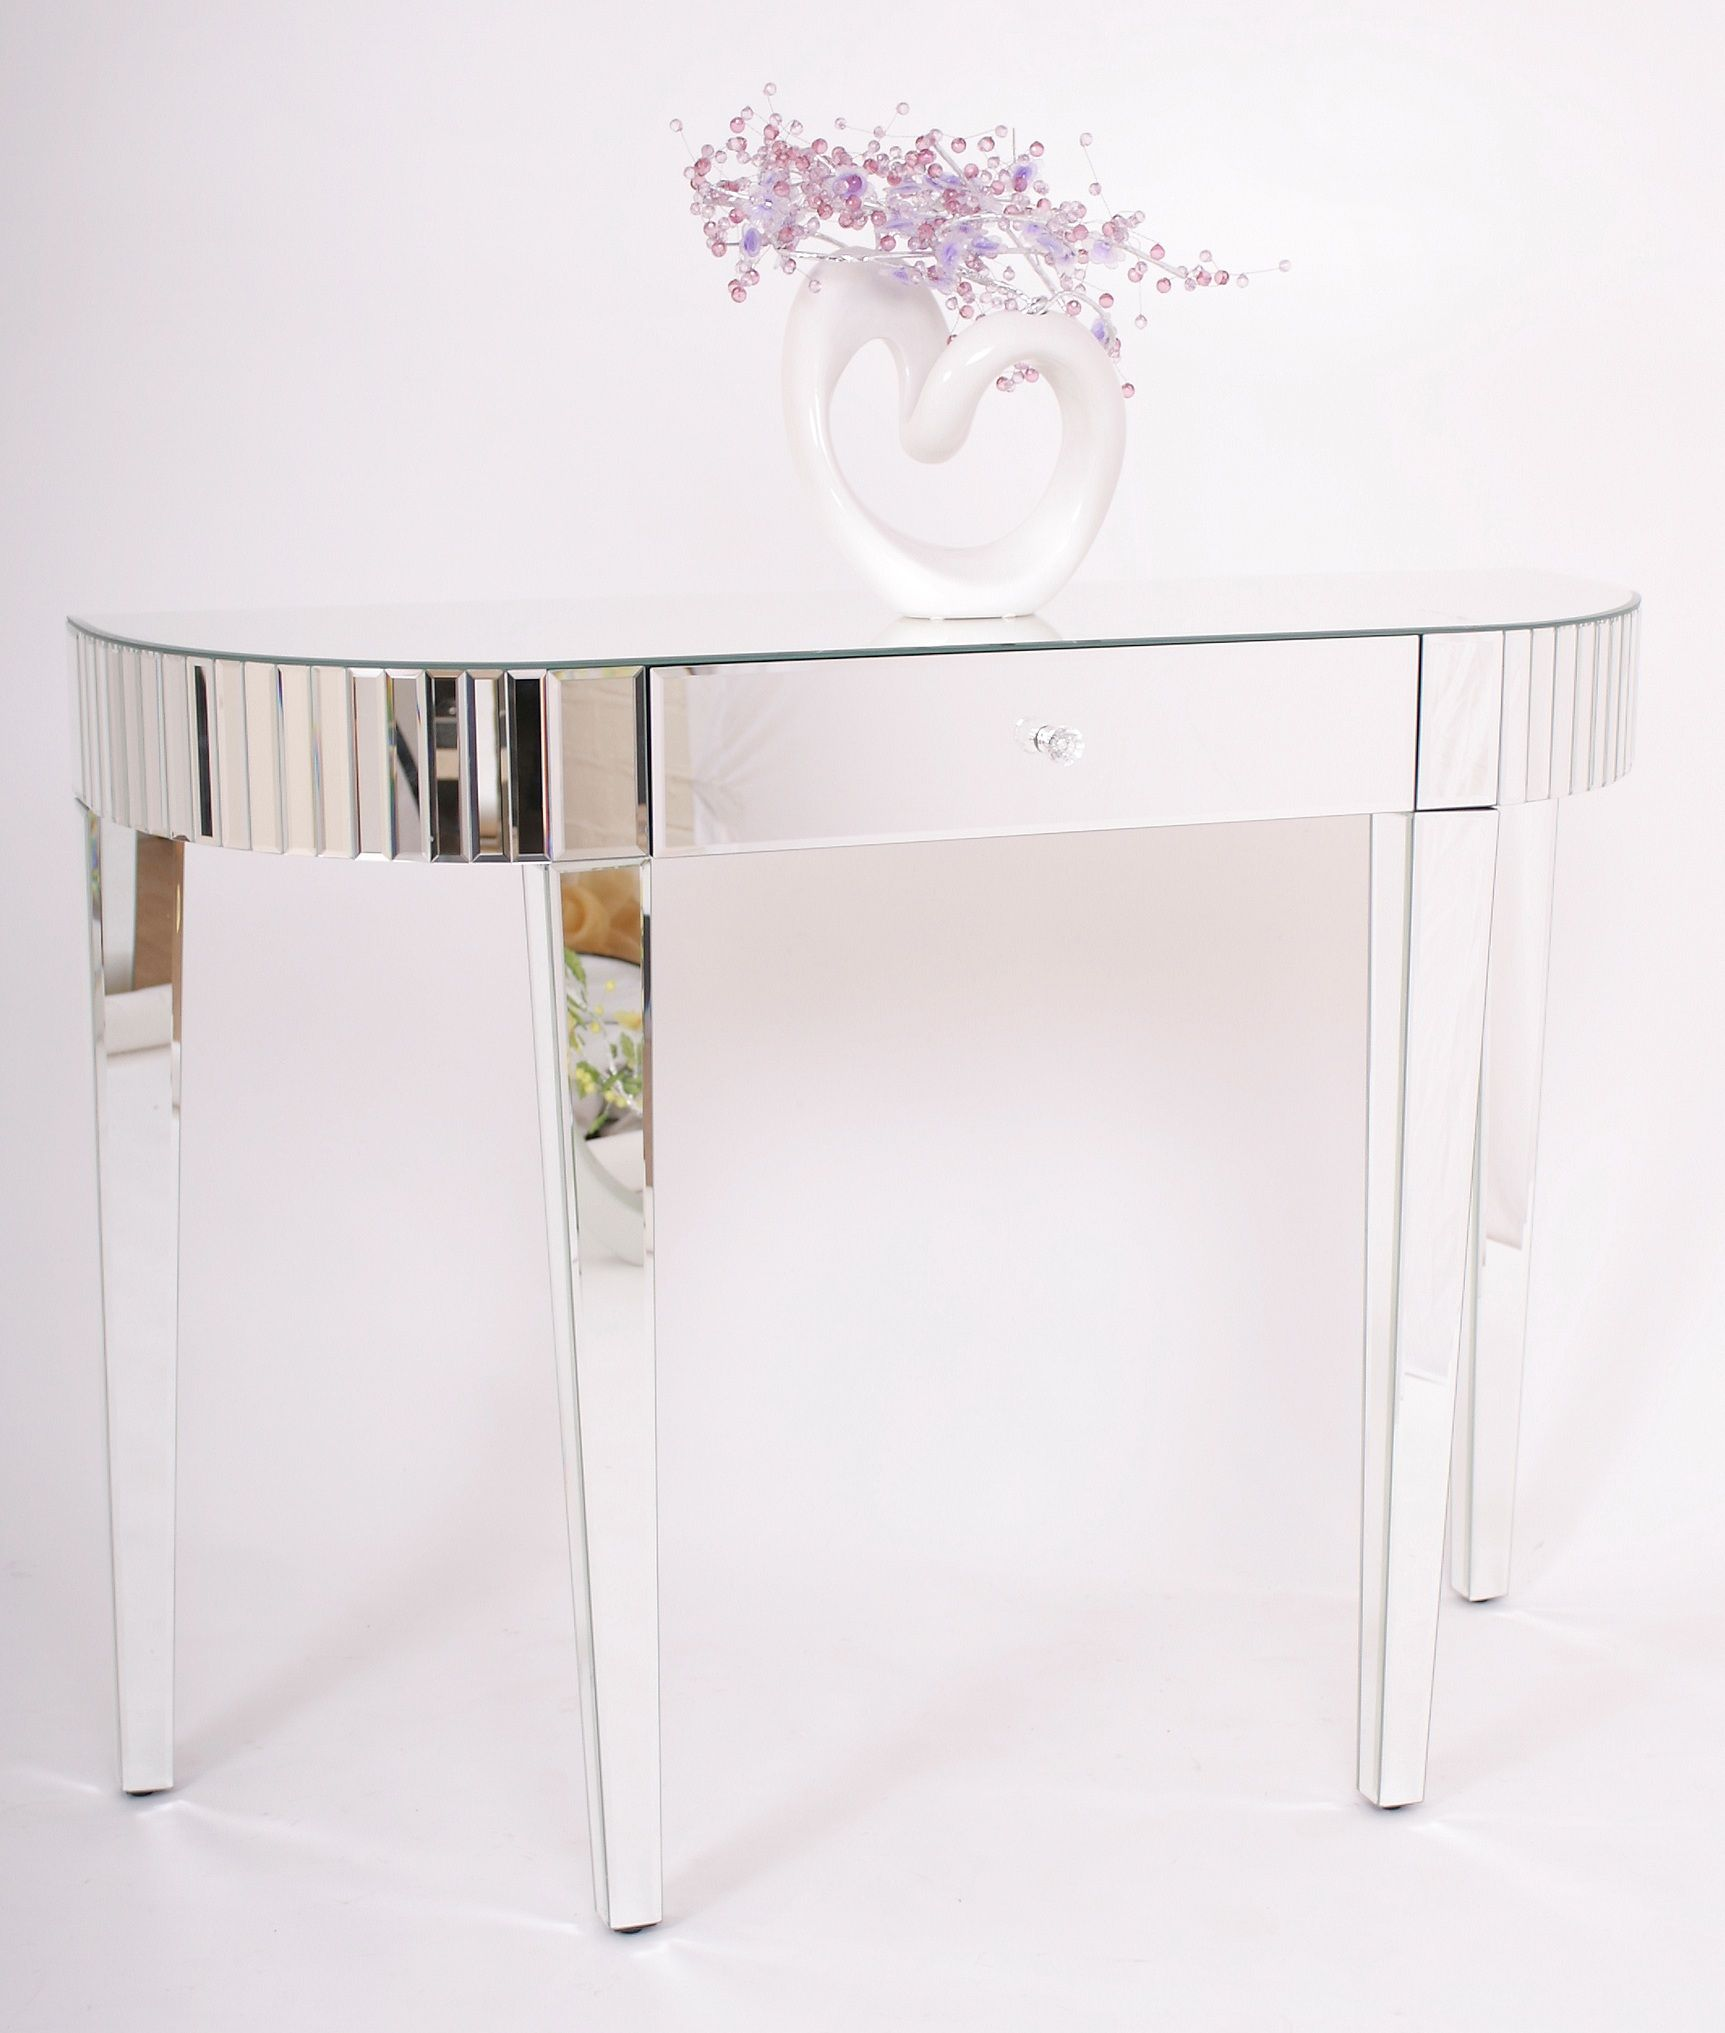 Contemporary Mirrored Venetian Glass Half Moon Console Table : contemporary mirrored venetian glass half moon console table 27183 p from www.uniquechicfurniture.co.uk size 1725 x 2033 jpeg 170kB